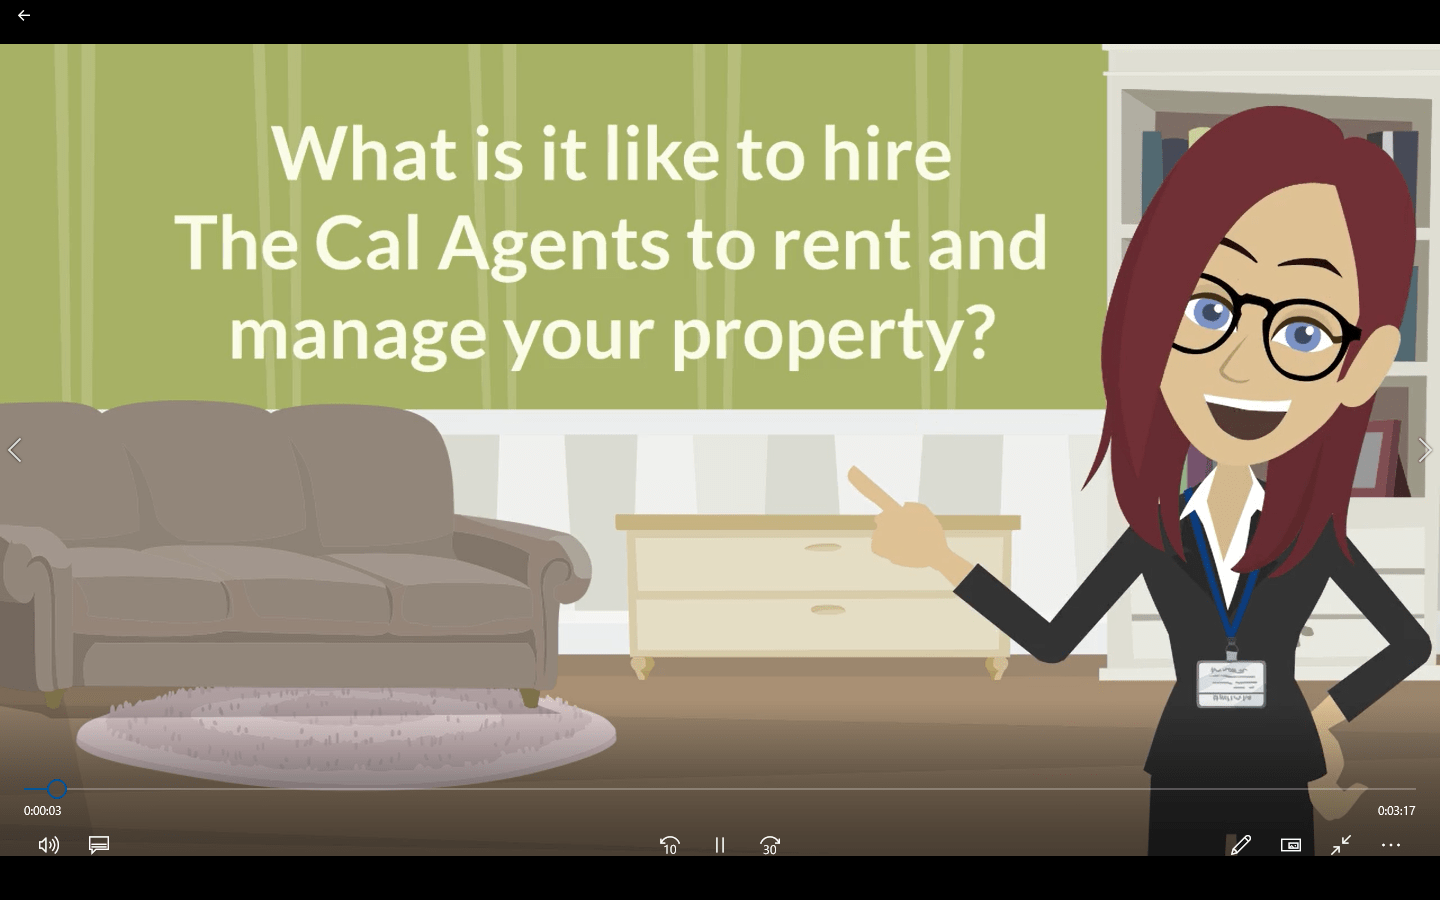 What is it like to hire The Cal Agents to rent and manage your property?